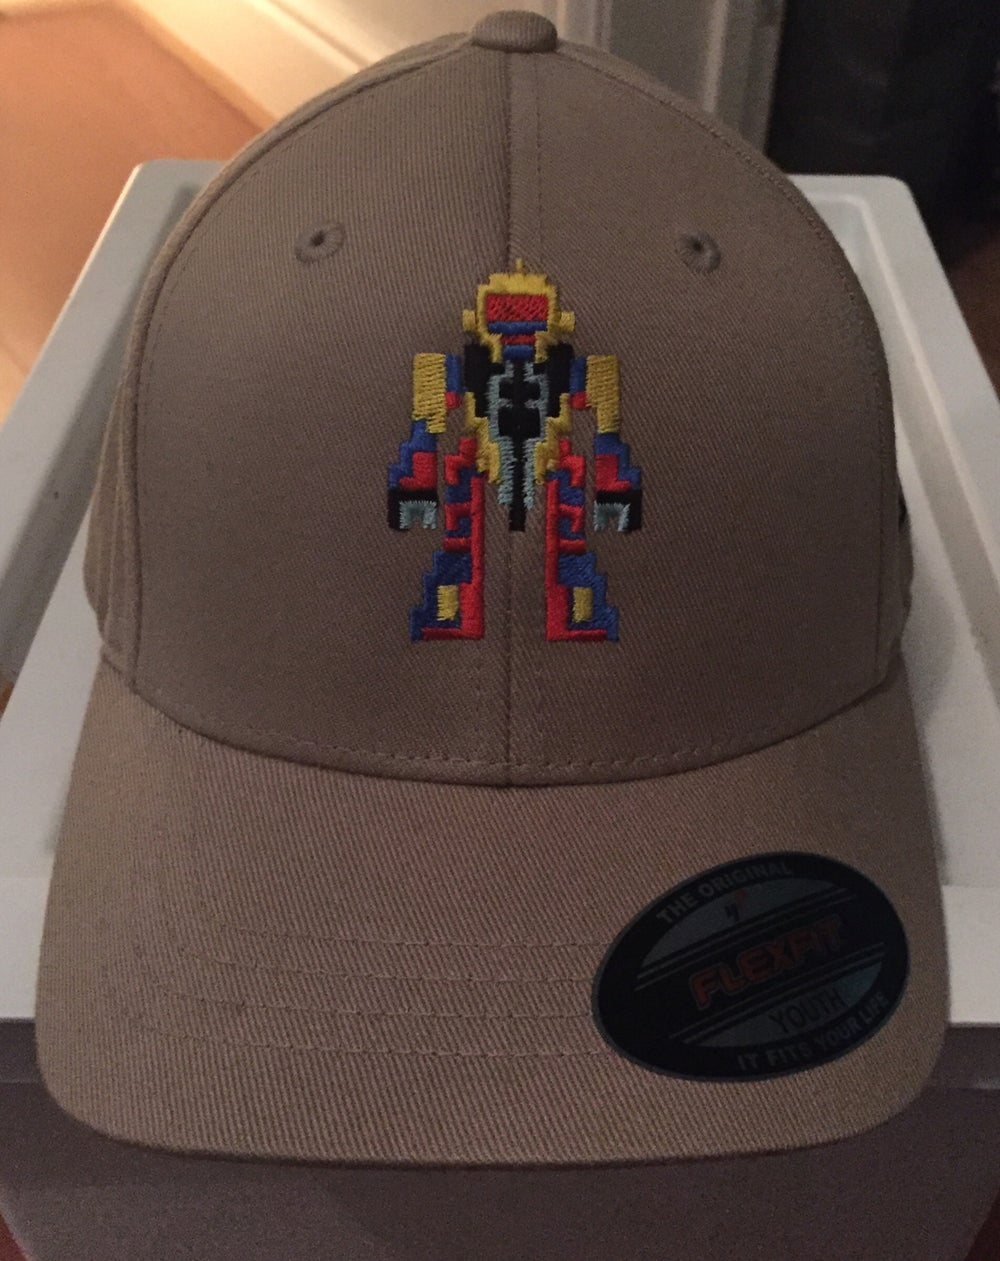 Image of Khaki Urban Youths Fiited Cap - Retro-Robot Design